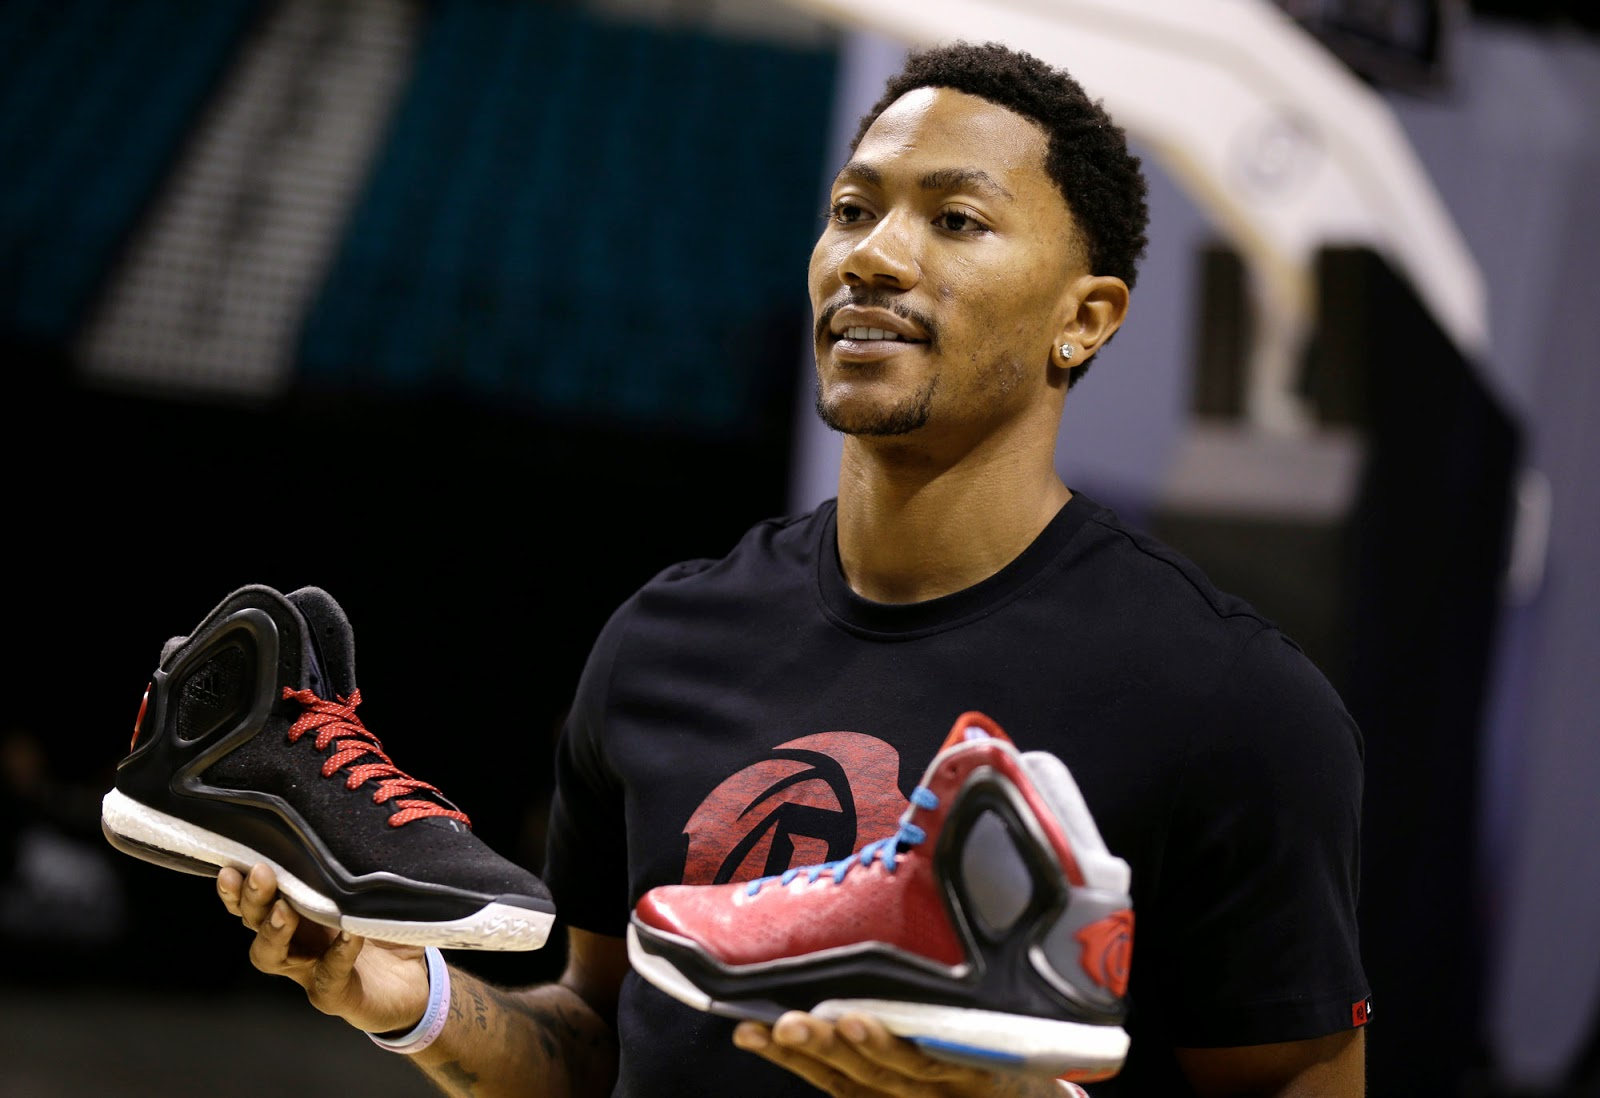 a54b6dad1b32 Docksquad Sports  NEW ADIDAS COMMERCIAL  BOOST CHANGES EVERYTHING FT. DERRICK  ROSE   DAMIAN LILLARD